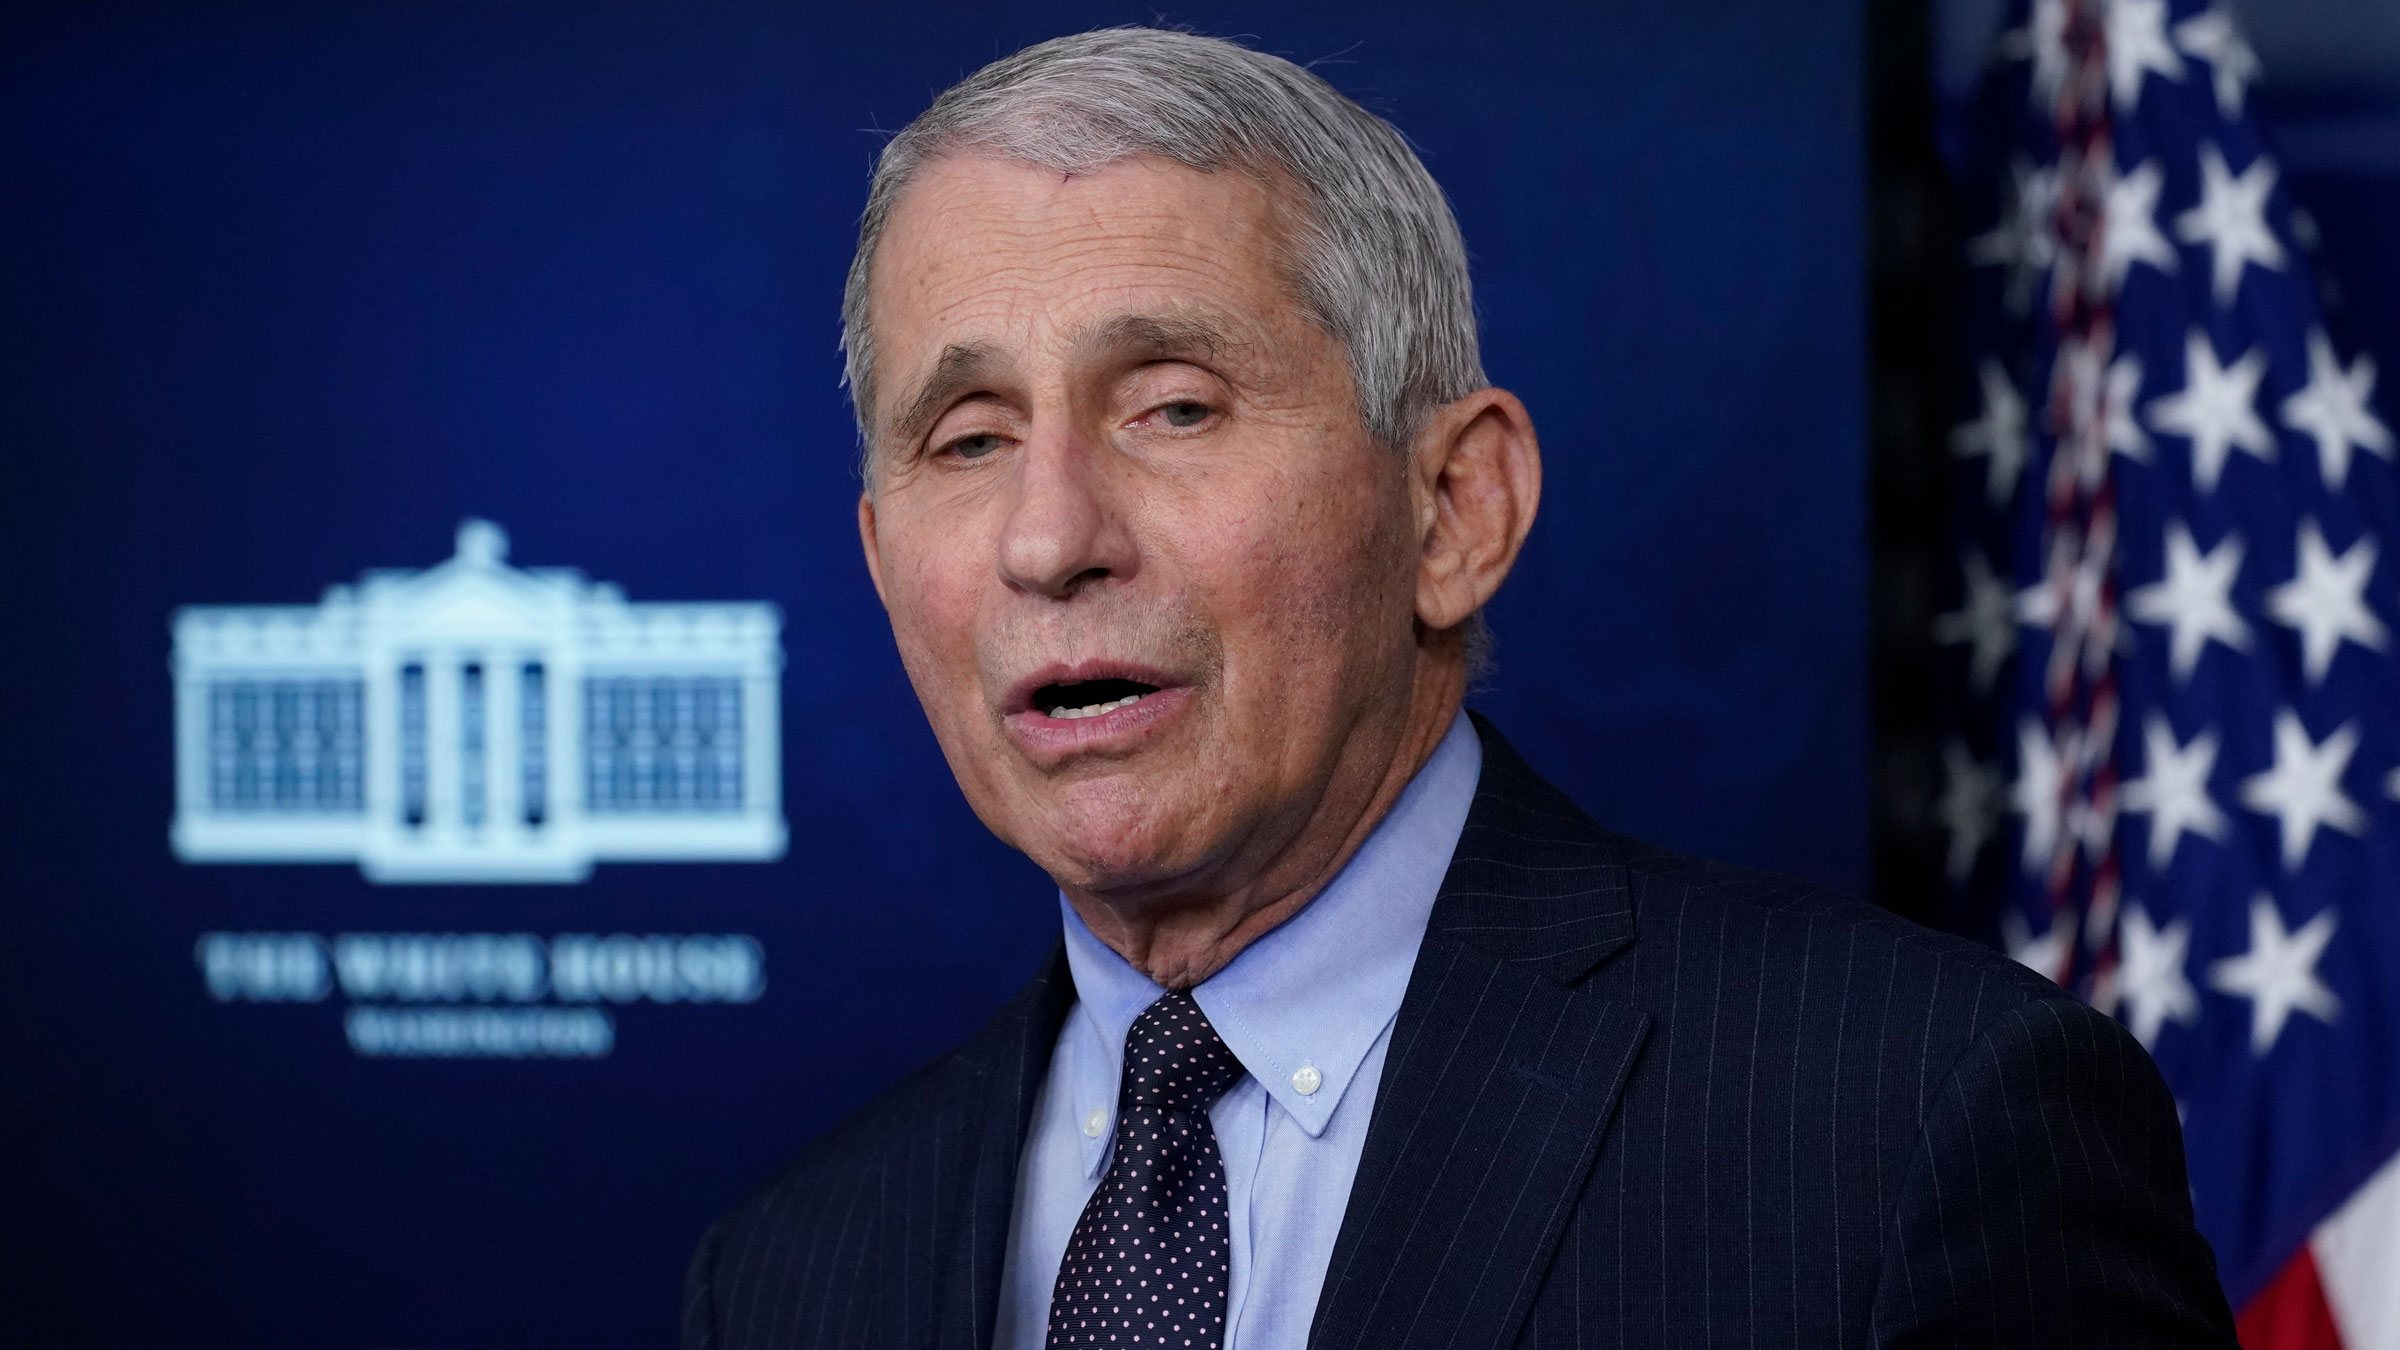 Dr. Anthony Fauci speaks with reporters last week in the White House Briefing Room.